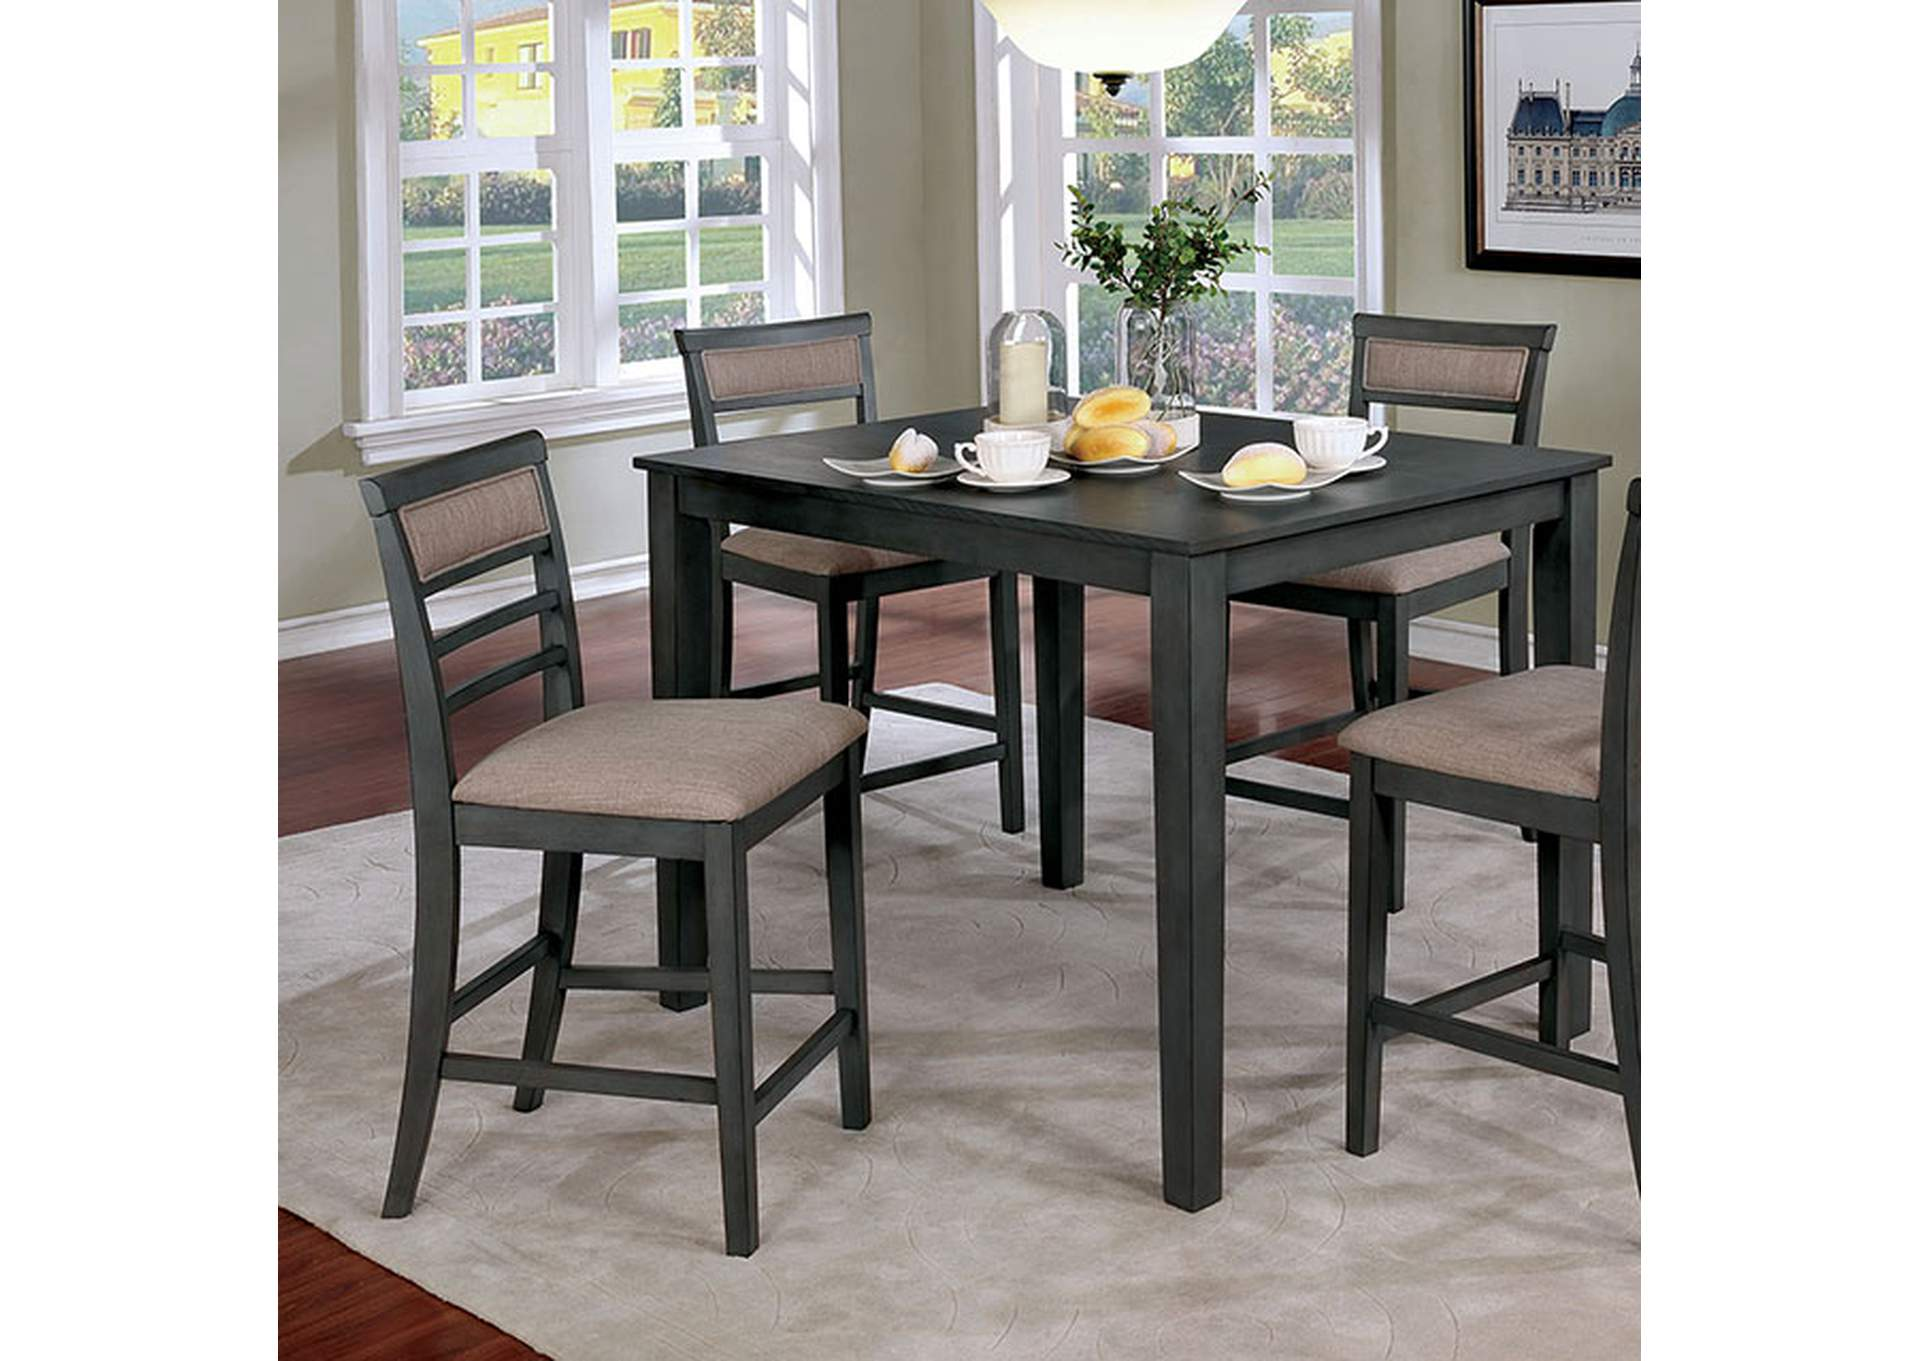 Fafnir Gray 5 Piece Counter Table Set,Furniture of America